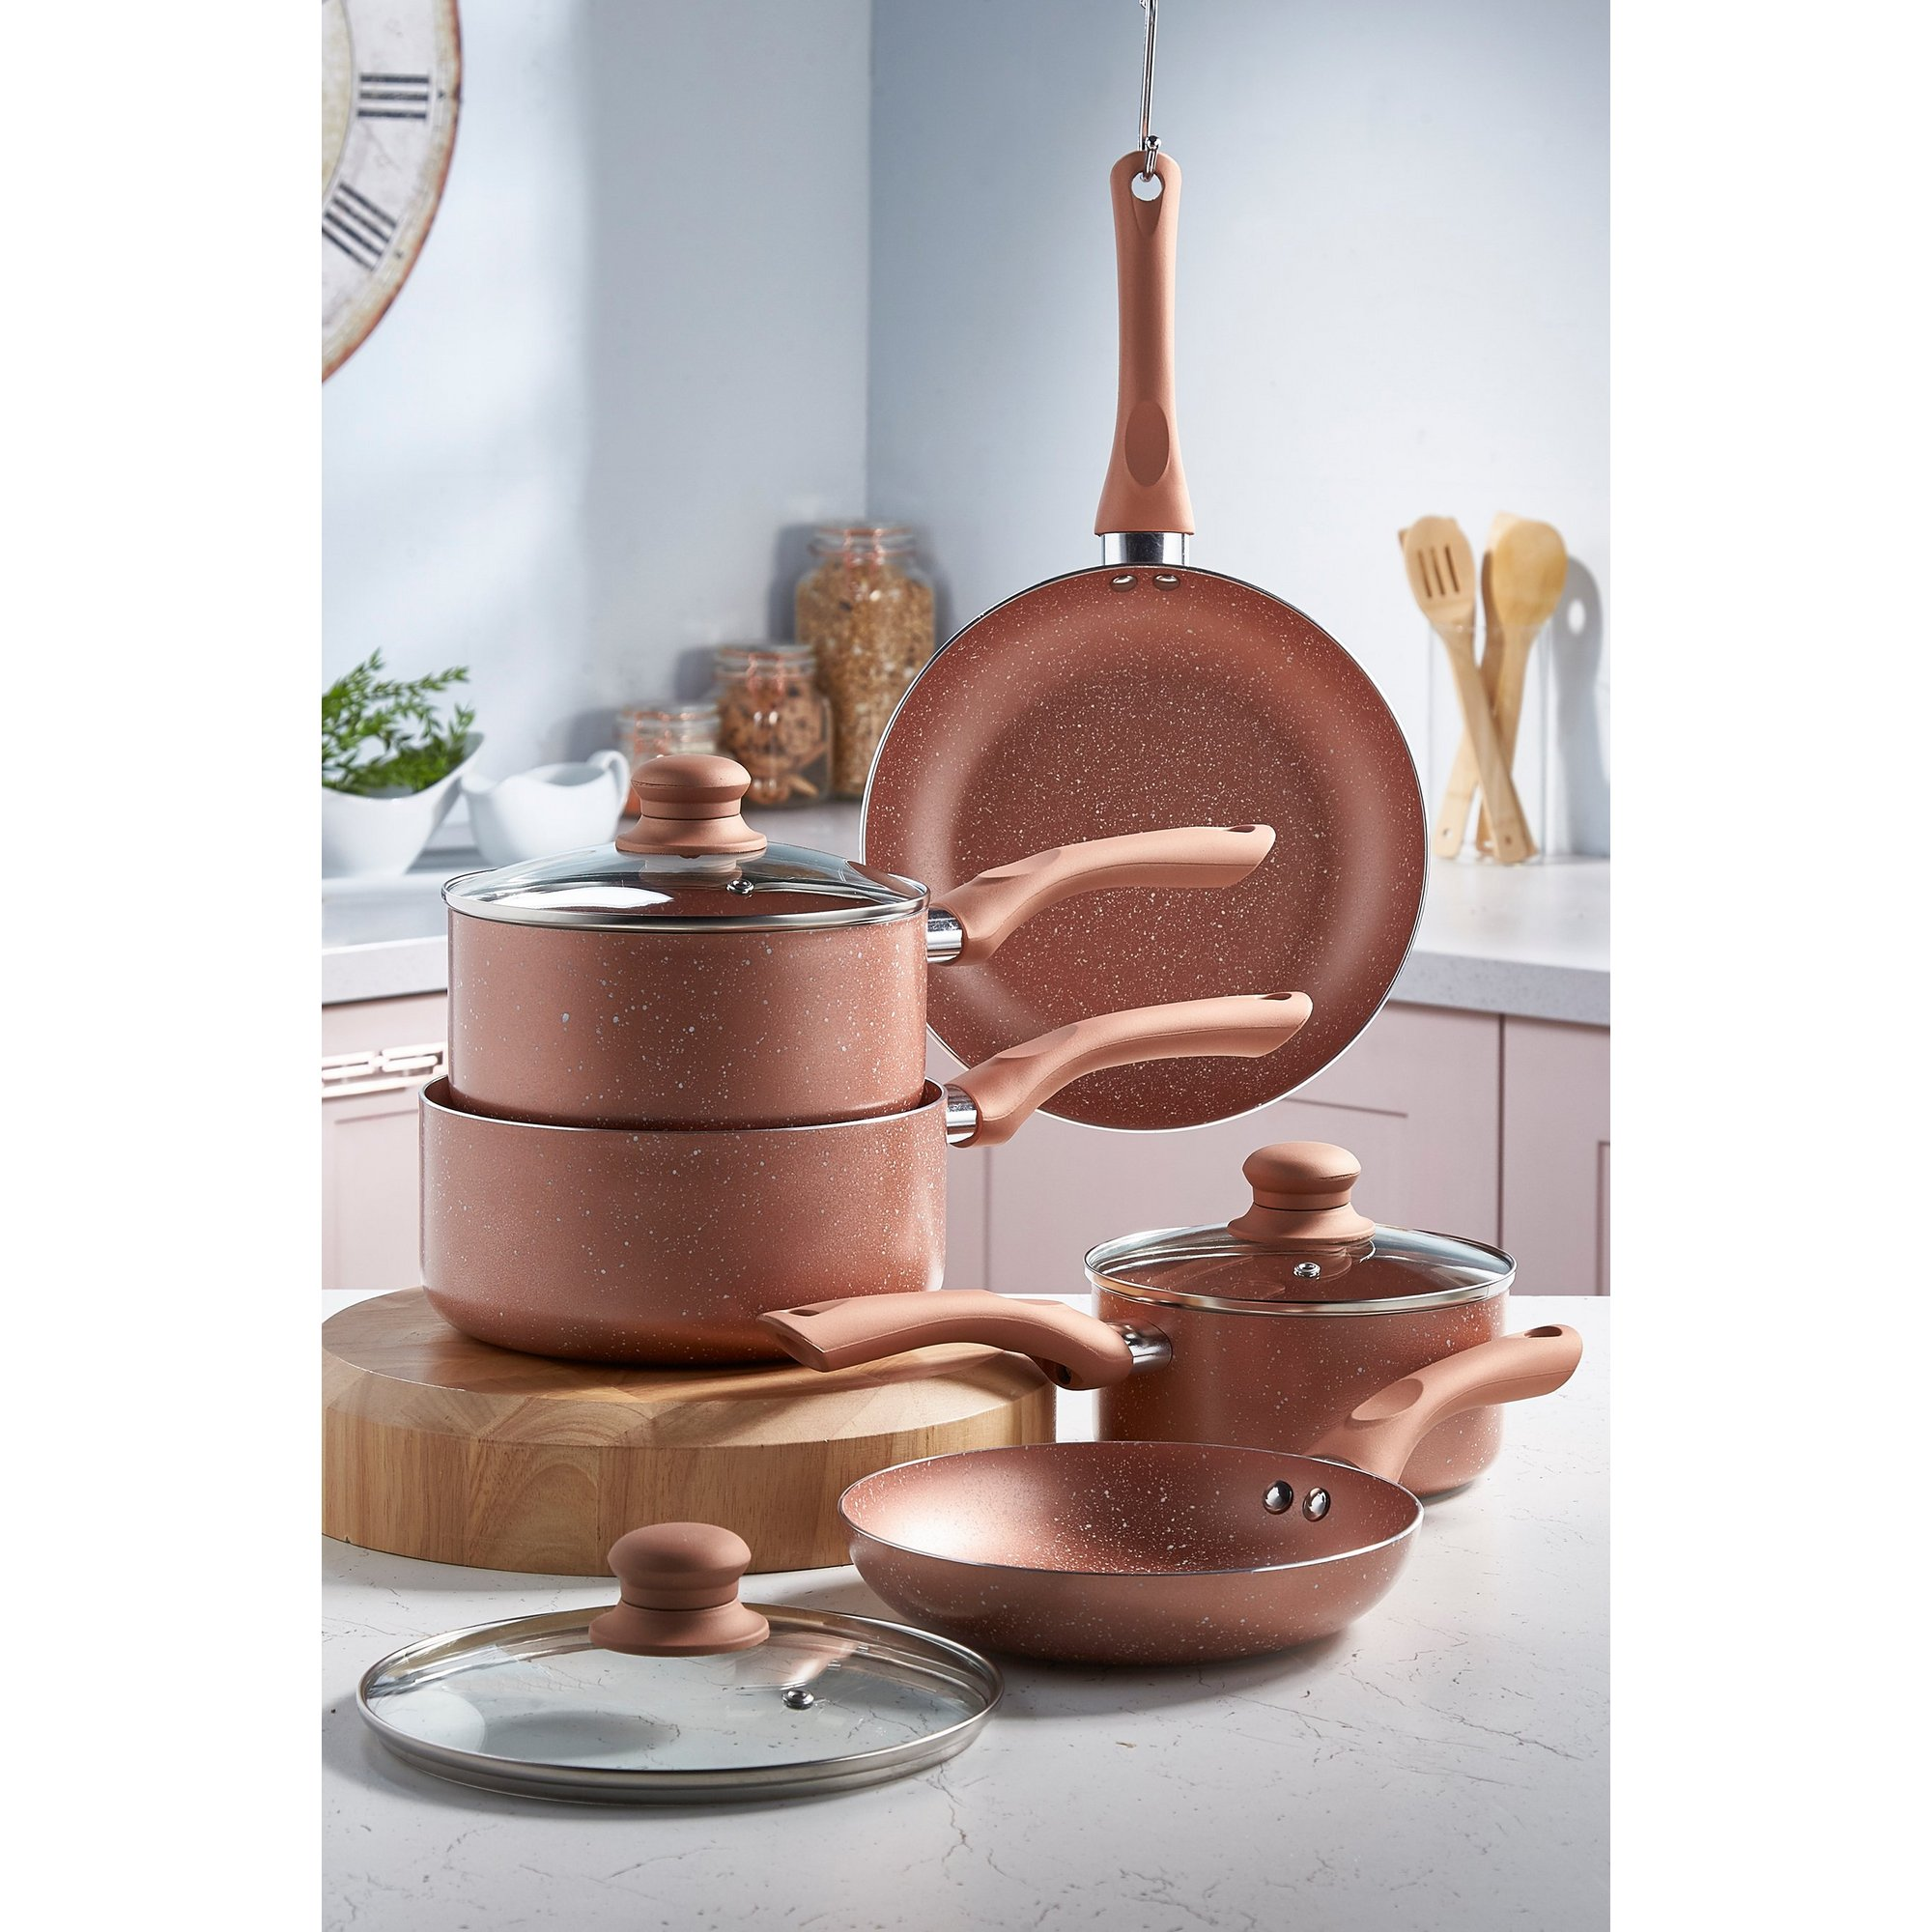 Image of 5-Piece Non-Stick Marble-Effect Pan Set